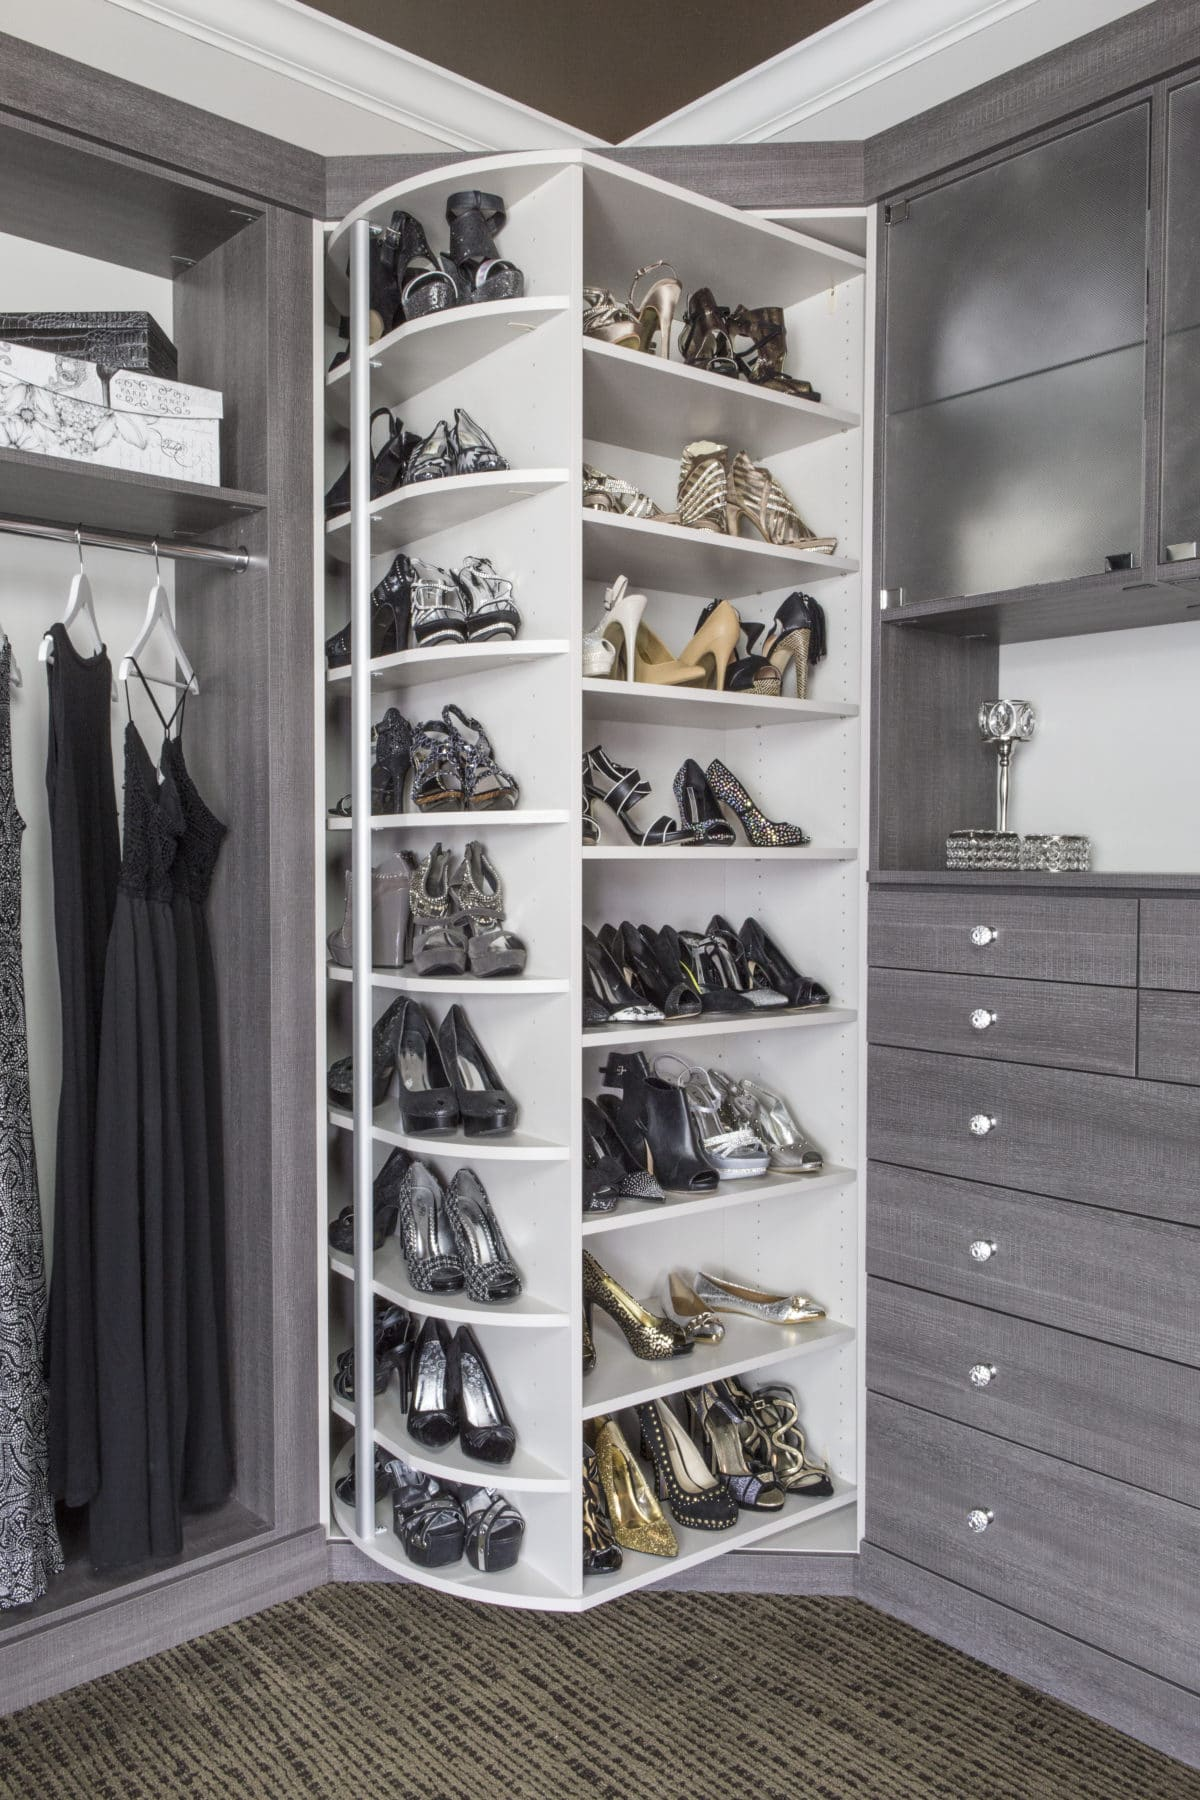 360 closet organizer phoenix az closet spinner. Black Bedroom Furniture Sets. Home Design Ideas